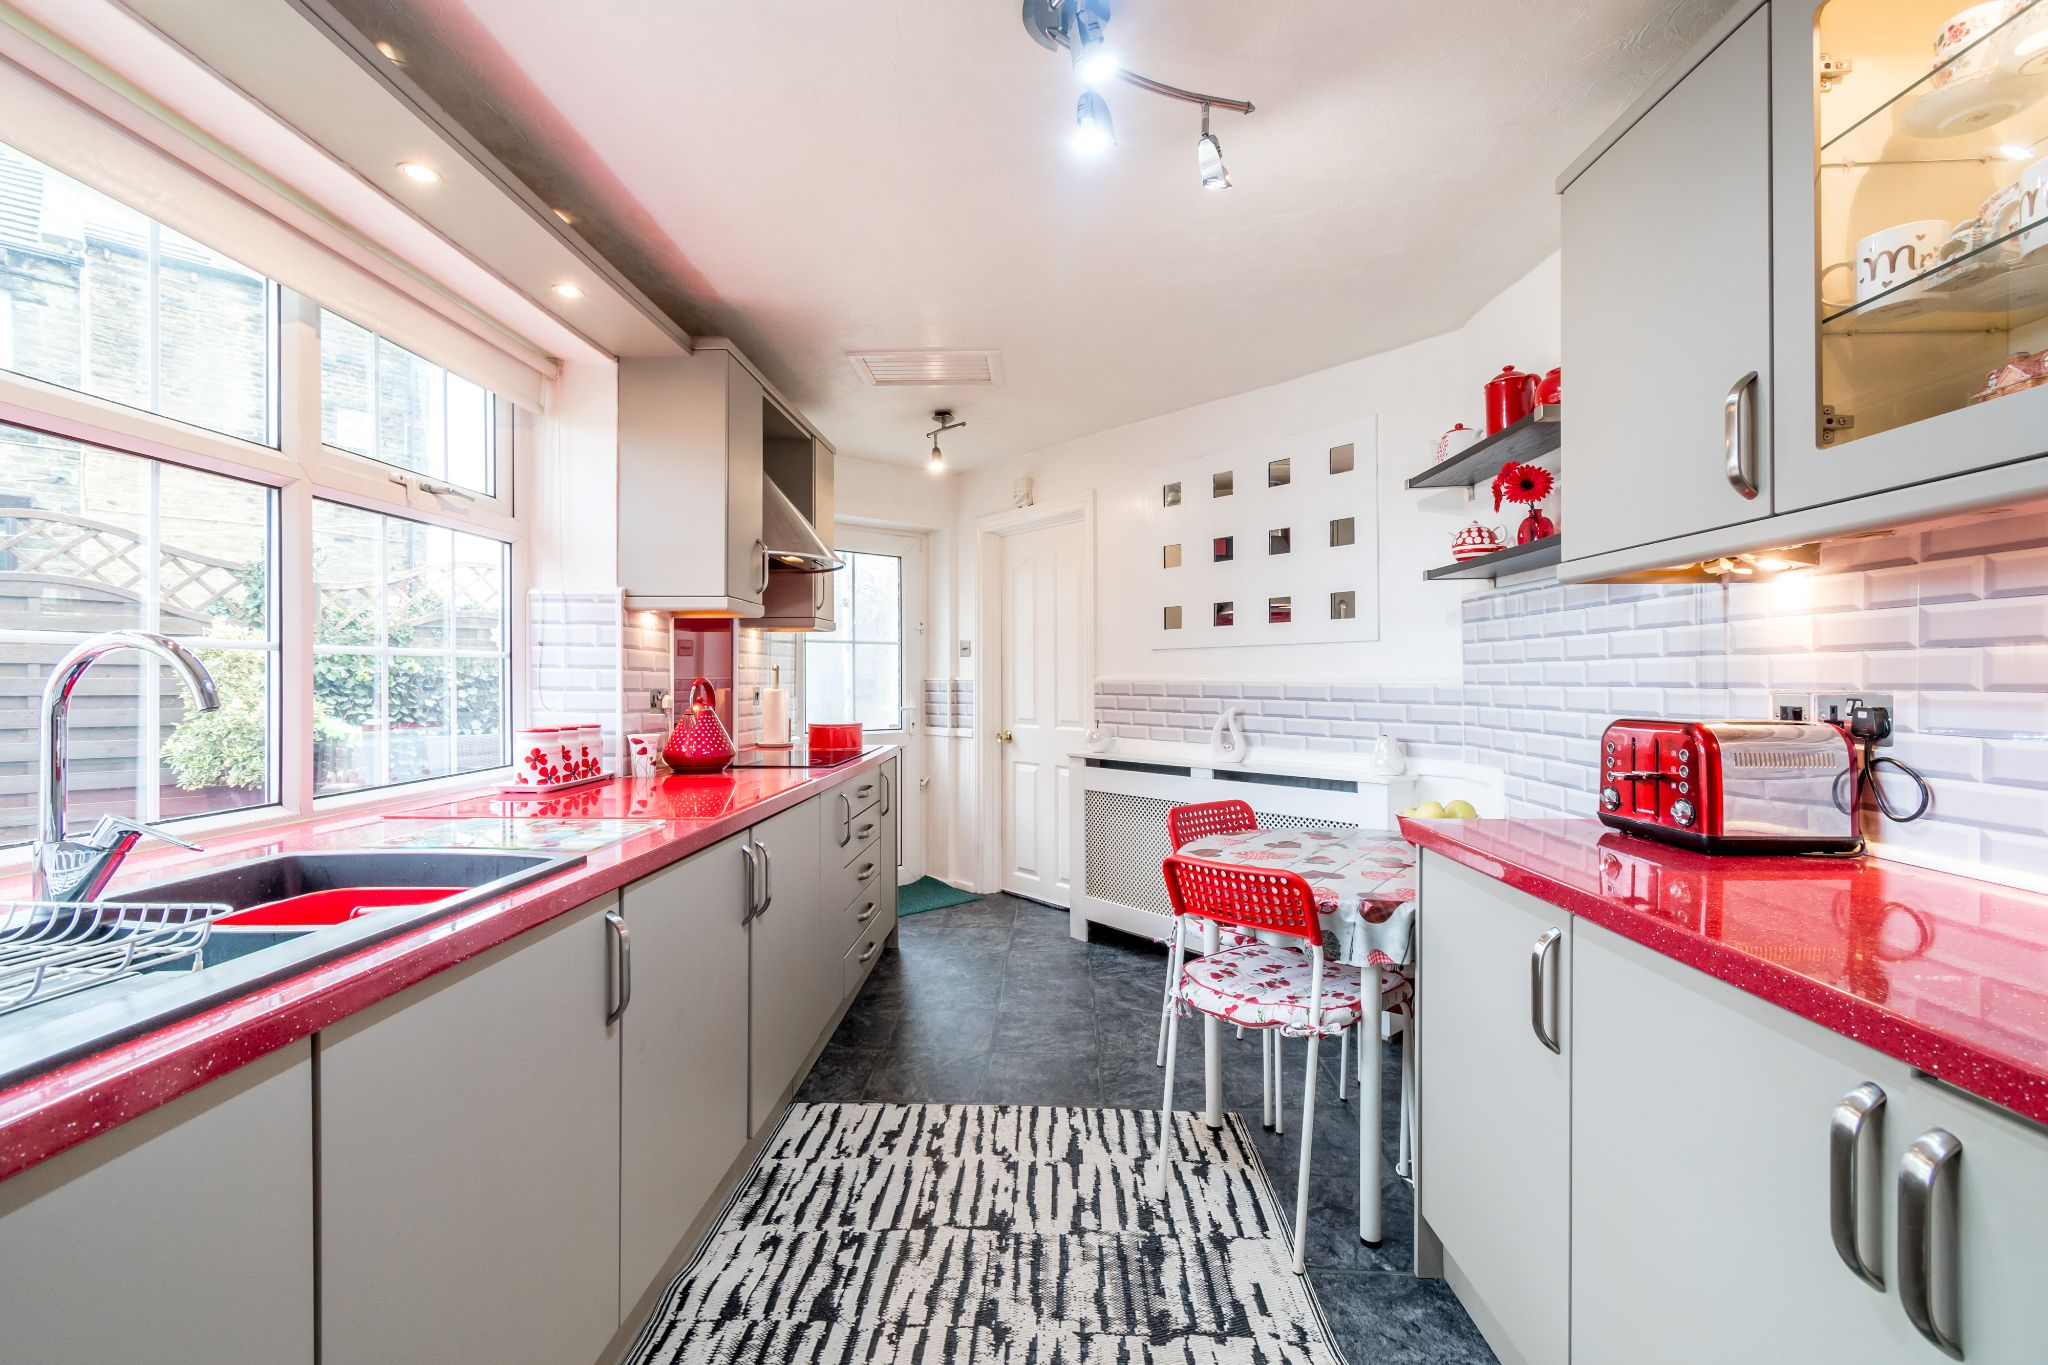 3 bedroom detached bungalow For Sale in Hove Edge - Kitchen